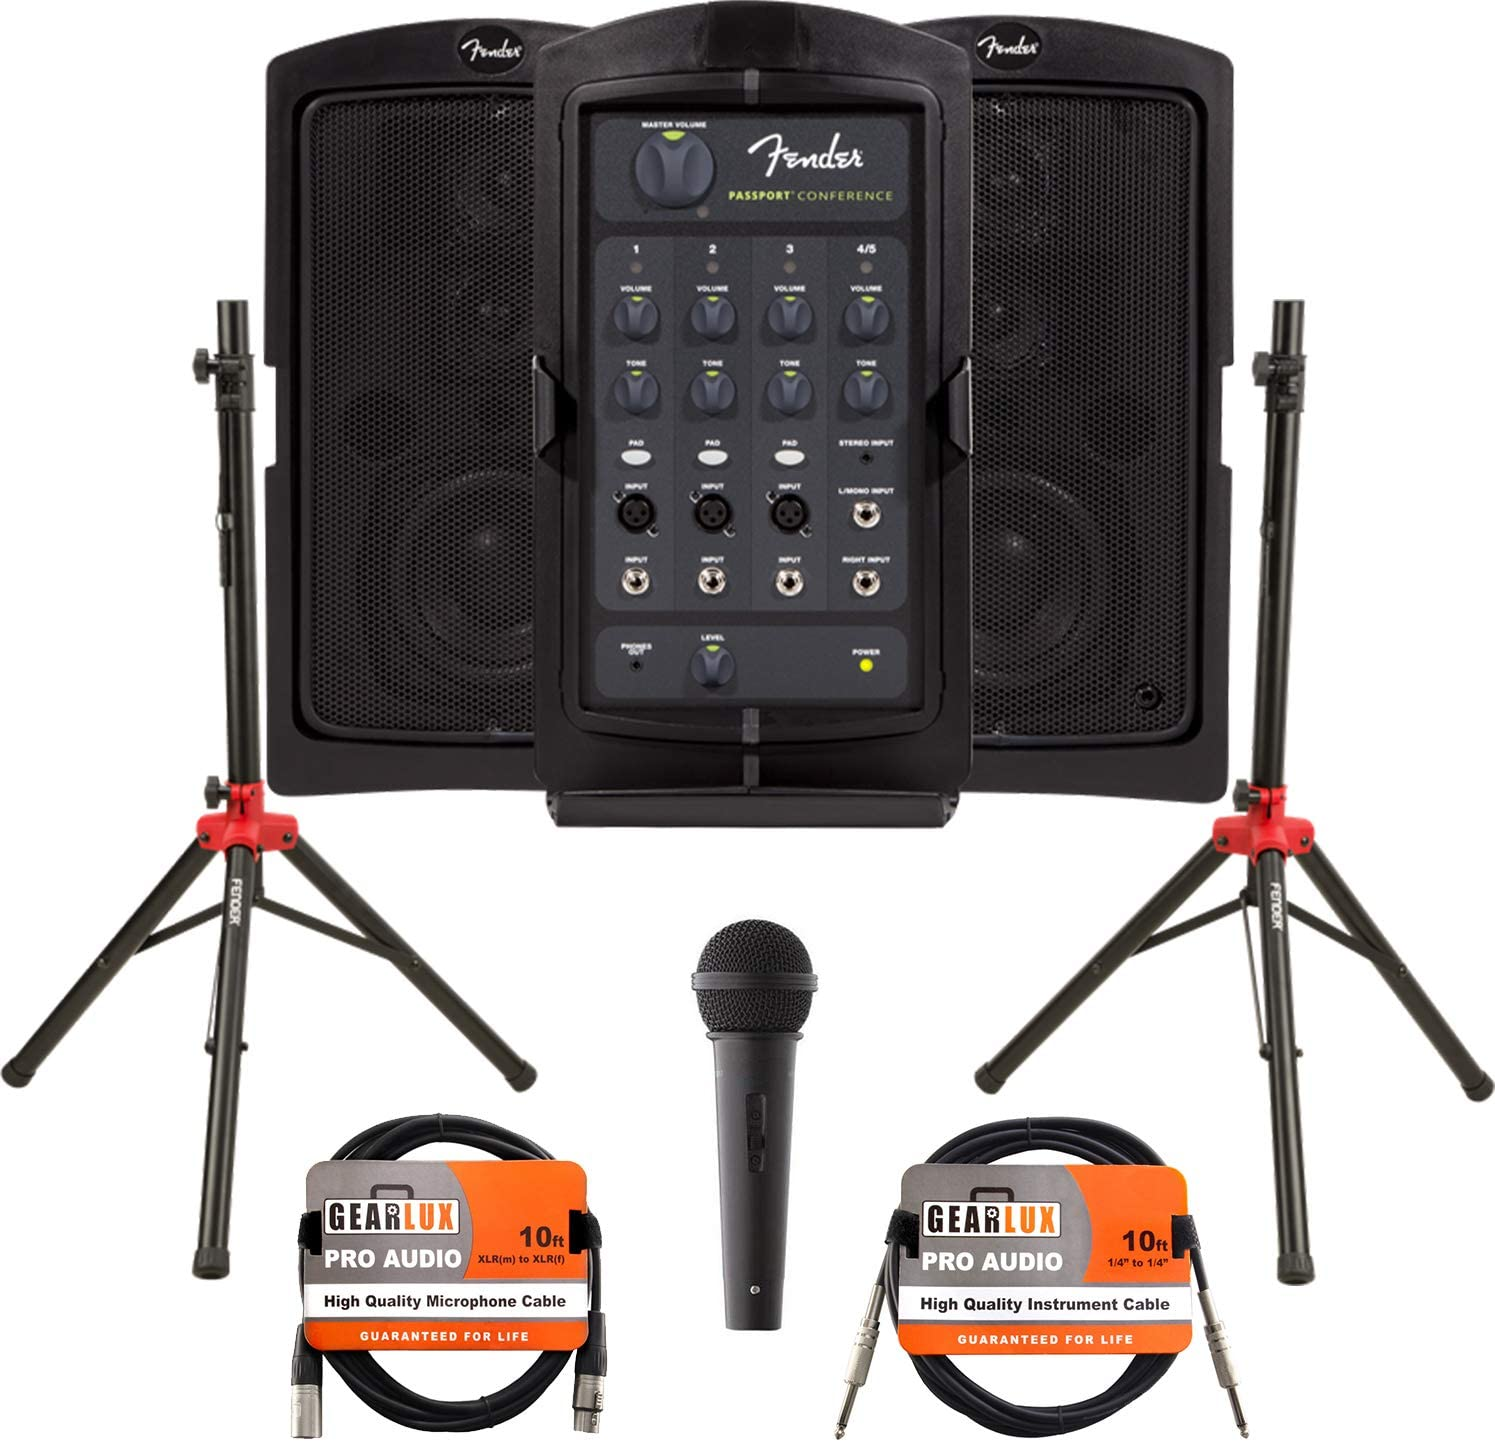 Fender Passport Conference Portable PA System Bundle with Microphone